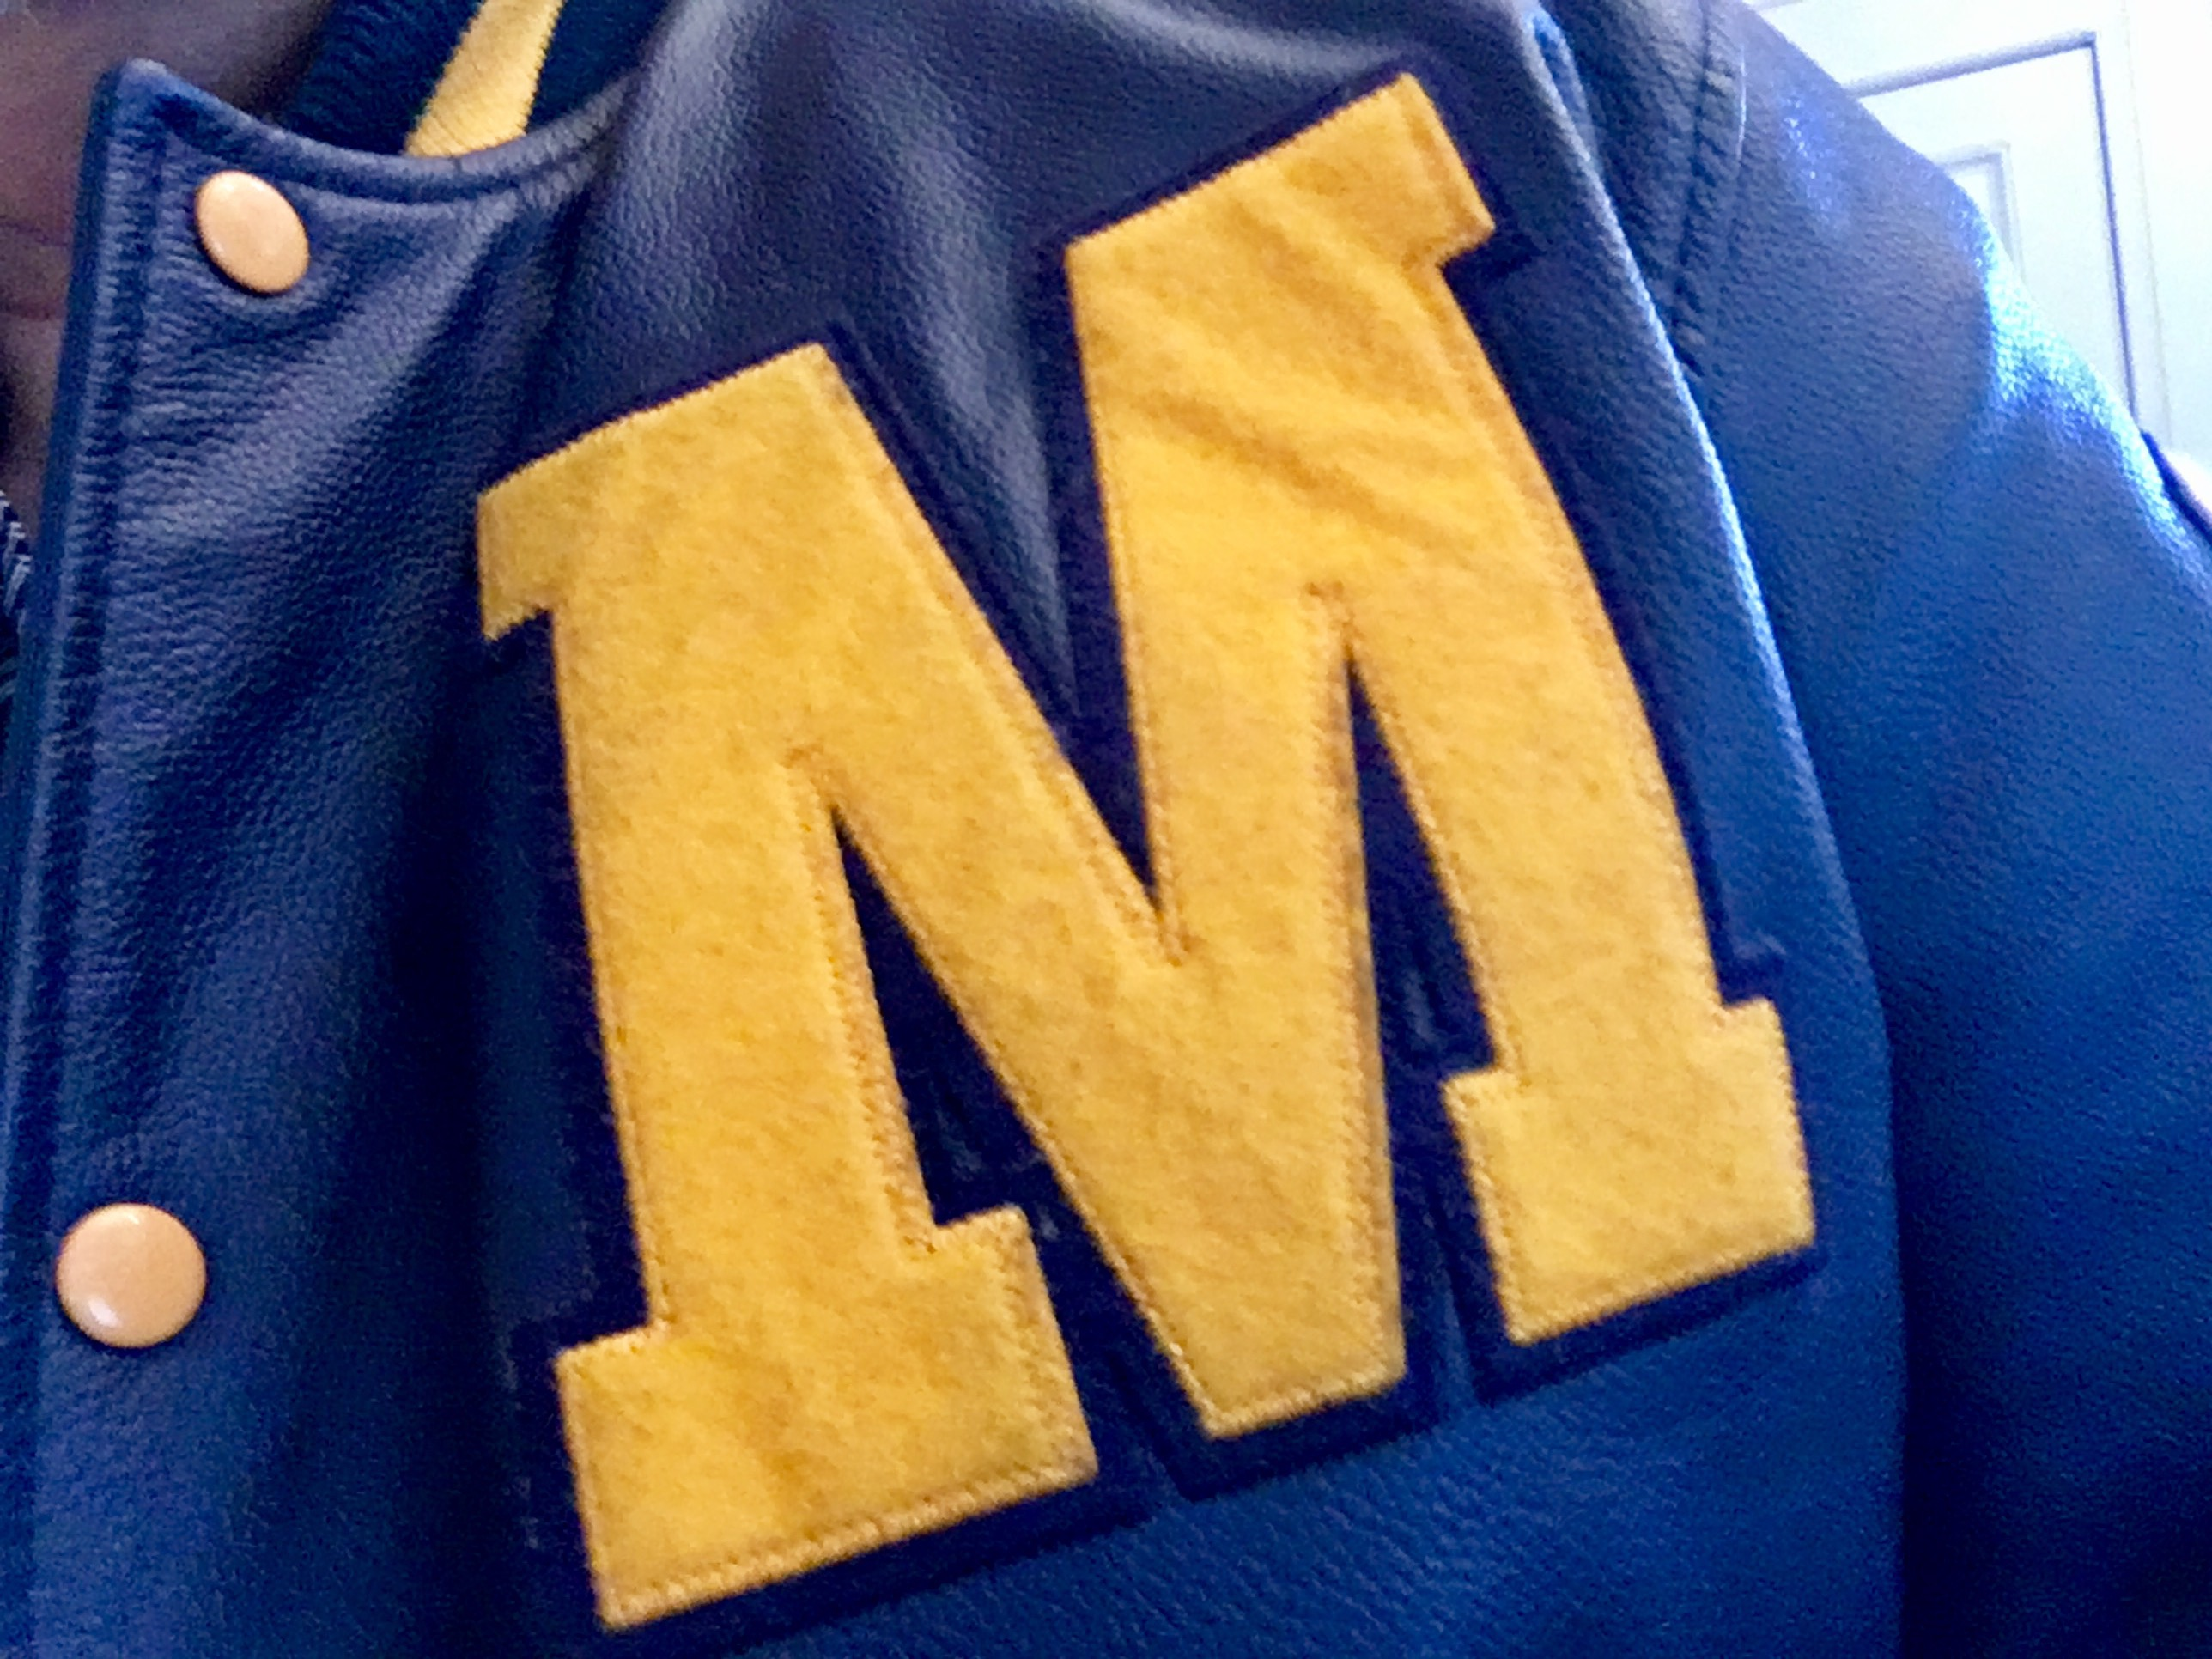 University of Michigan letterman jacket logo